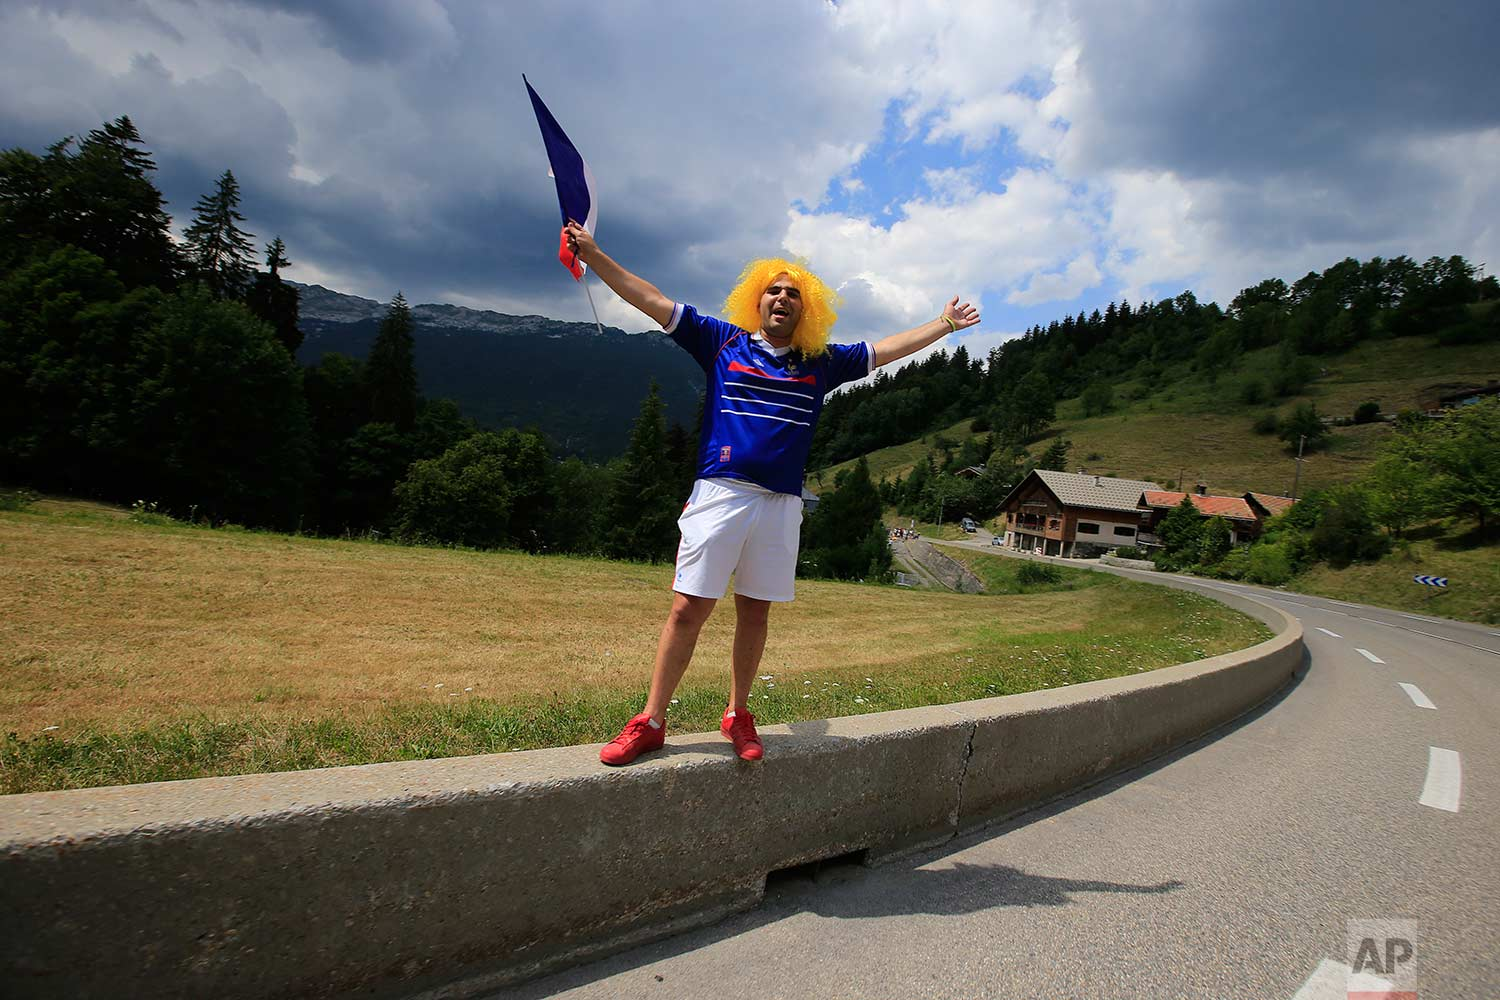 A cycling fan waves the French flag during the tenth stage of the Tour de France cycling race over 158.8 kilometers (98.7 miles) with start in Annecy and finish in Le Grand-Bornand, France, Tuesday, July 17, 2018. (AP Photo/Peter Dejong)